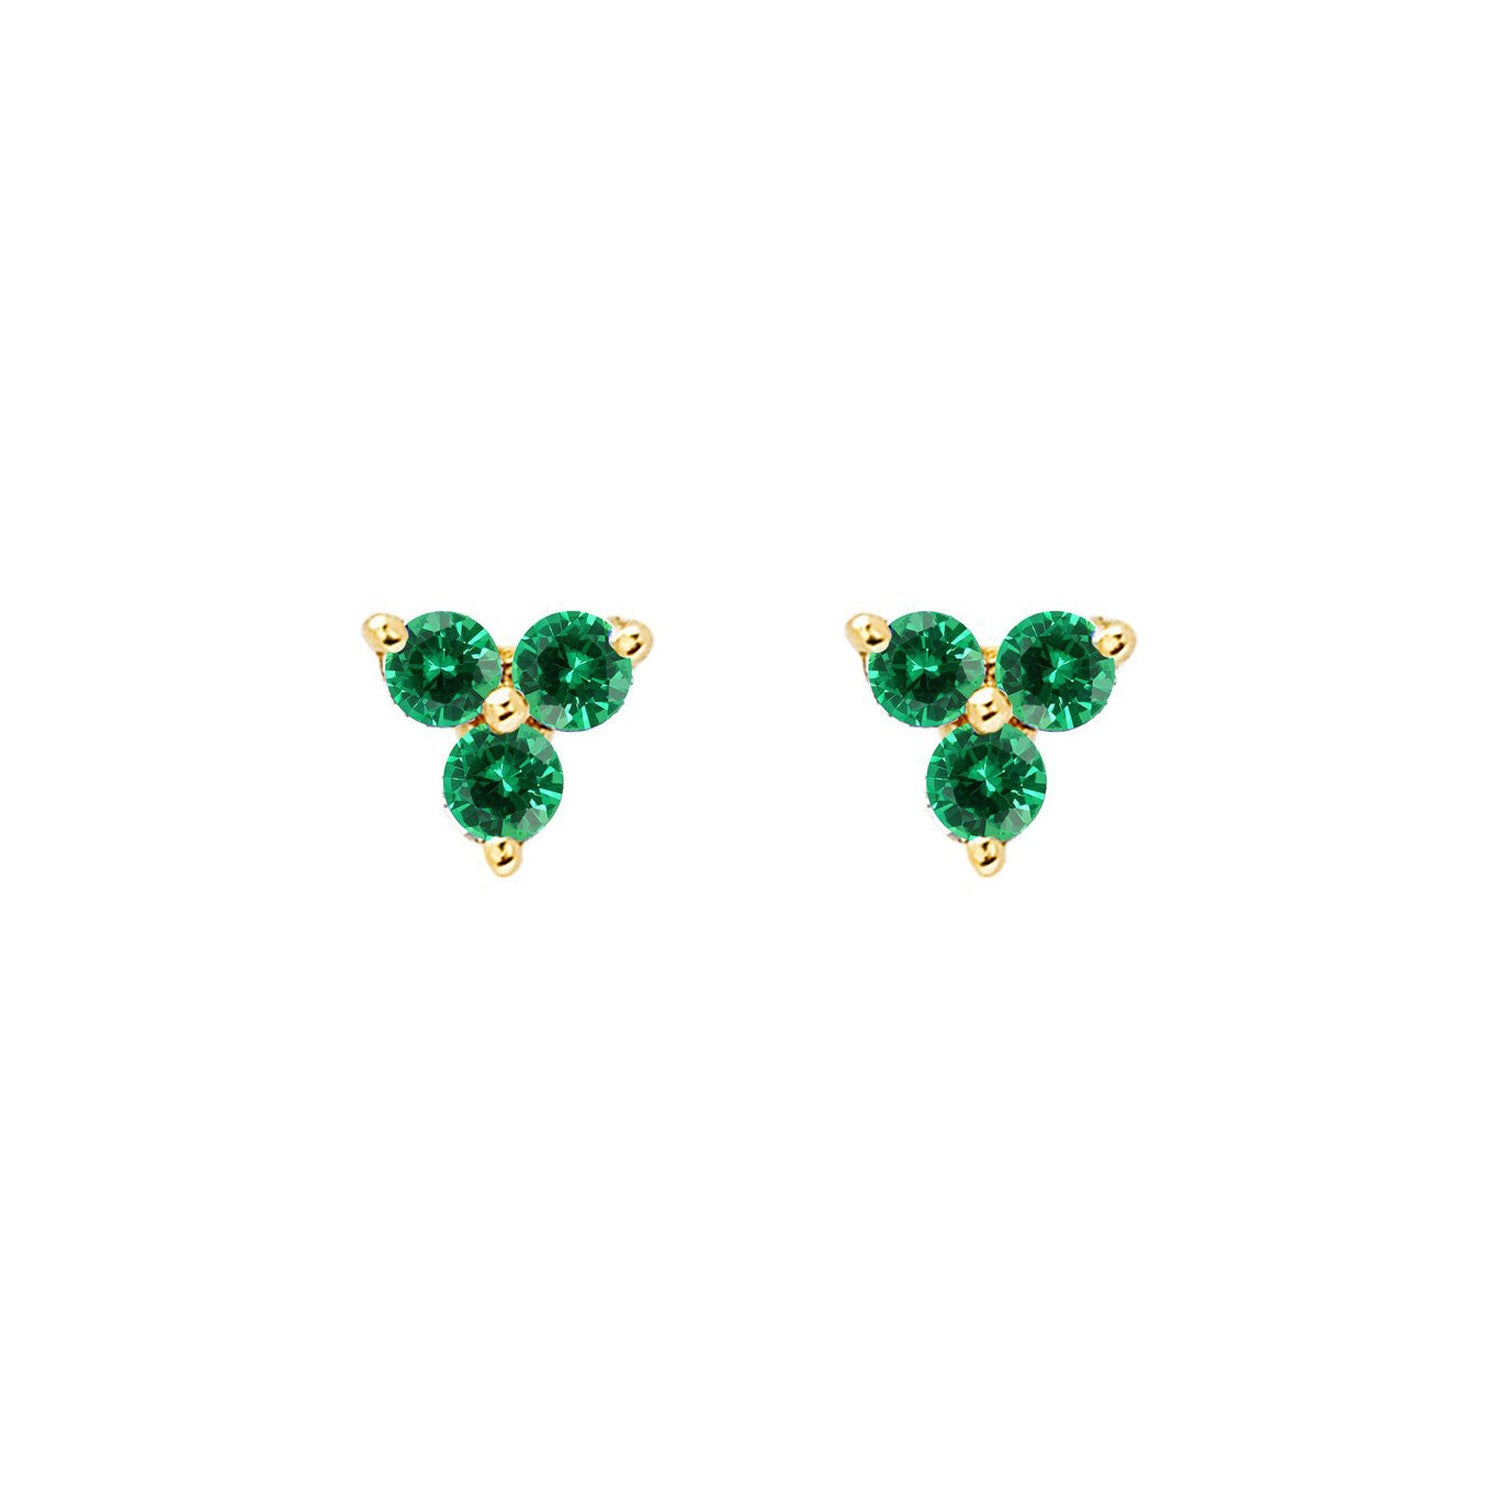 Trio Gemstone Stud Earrings